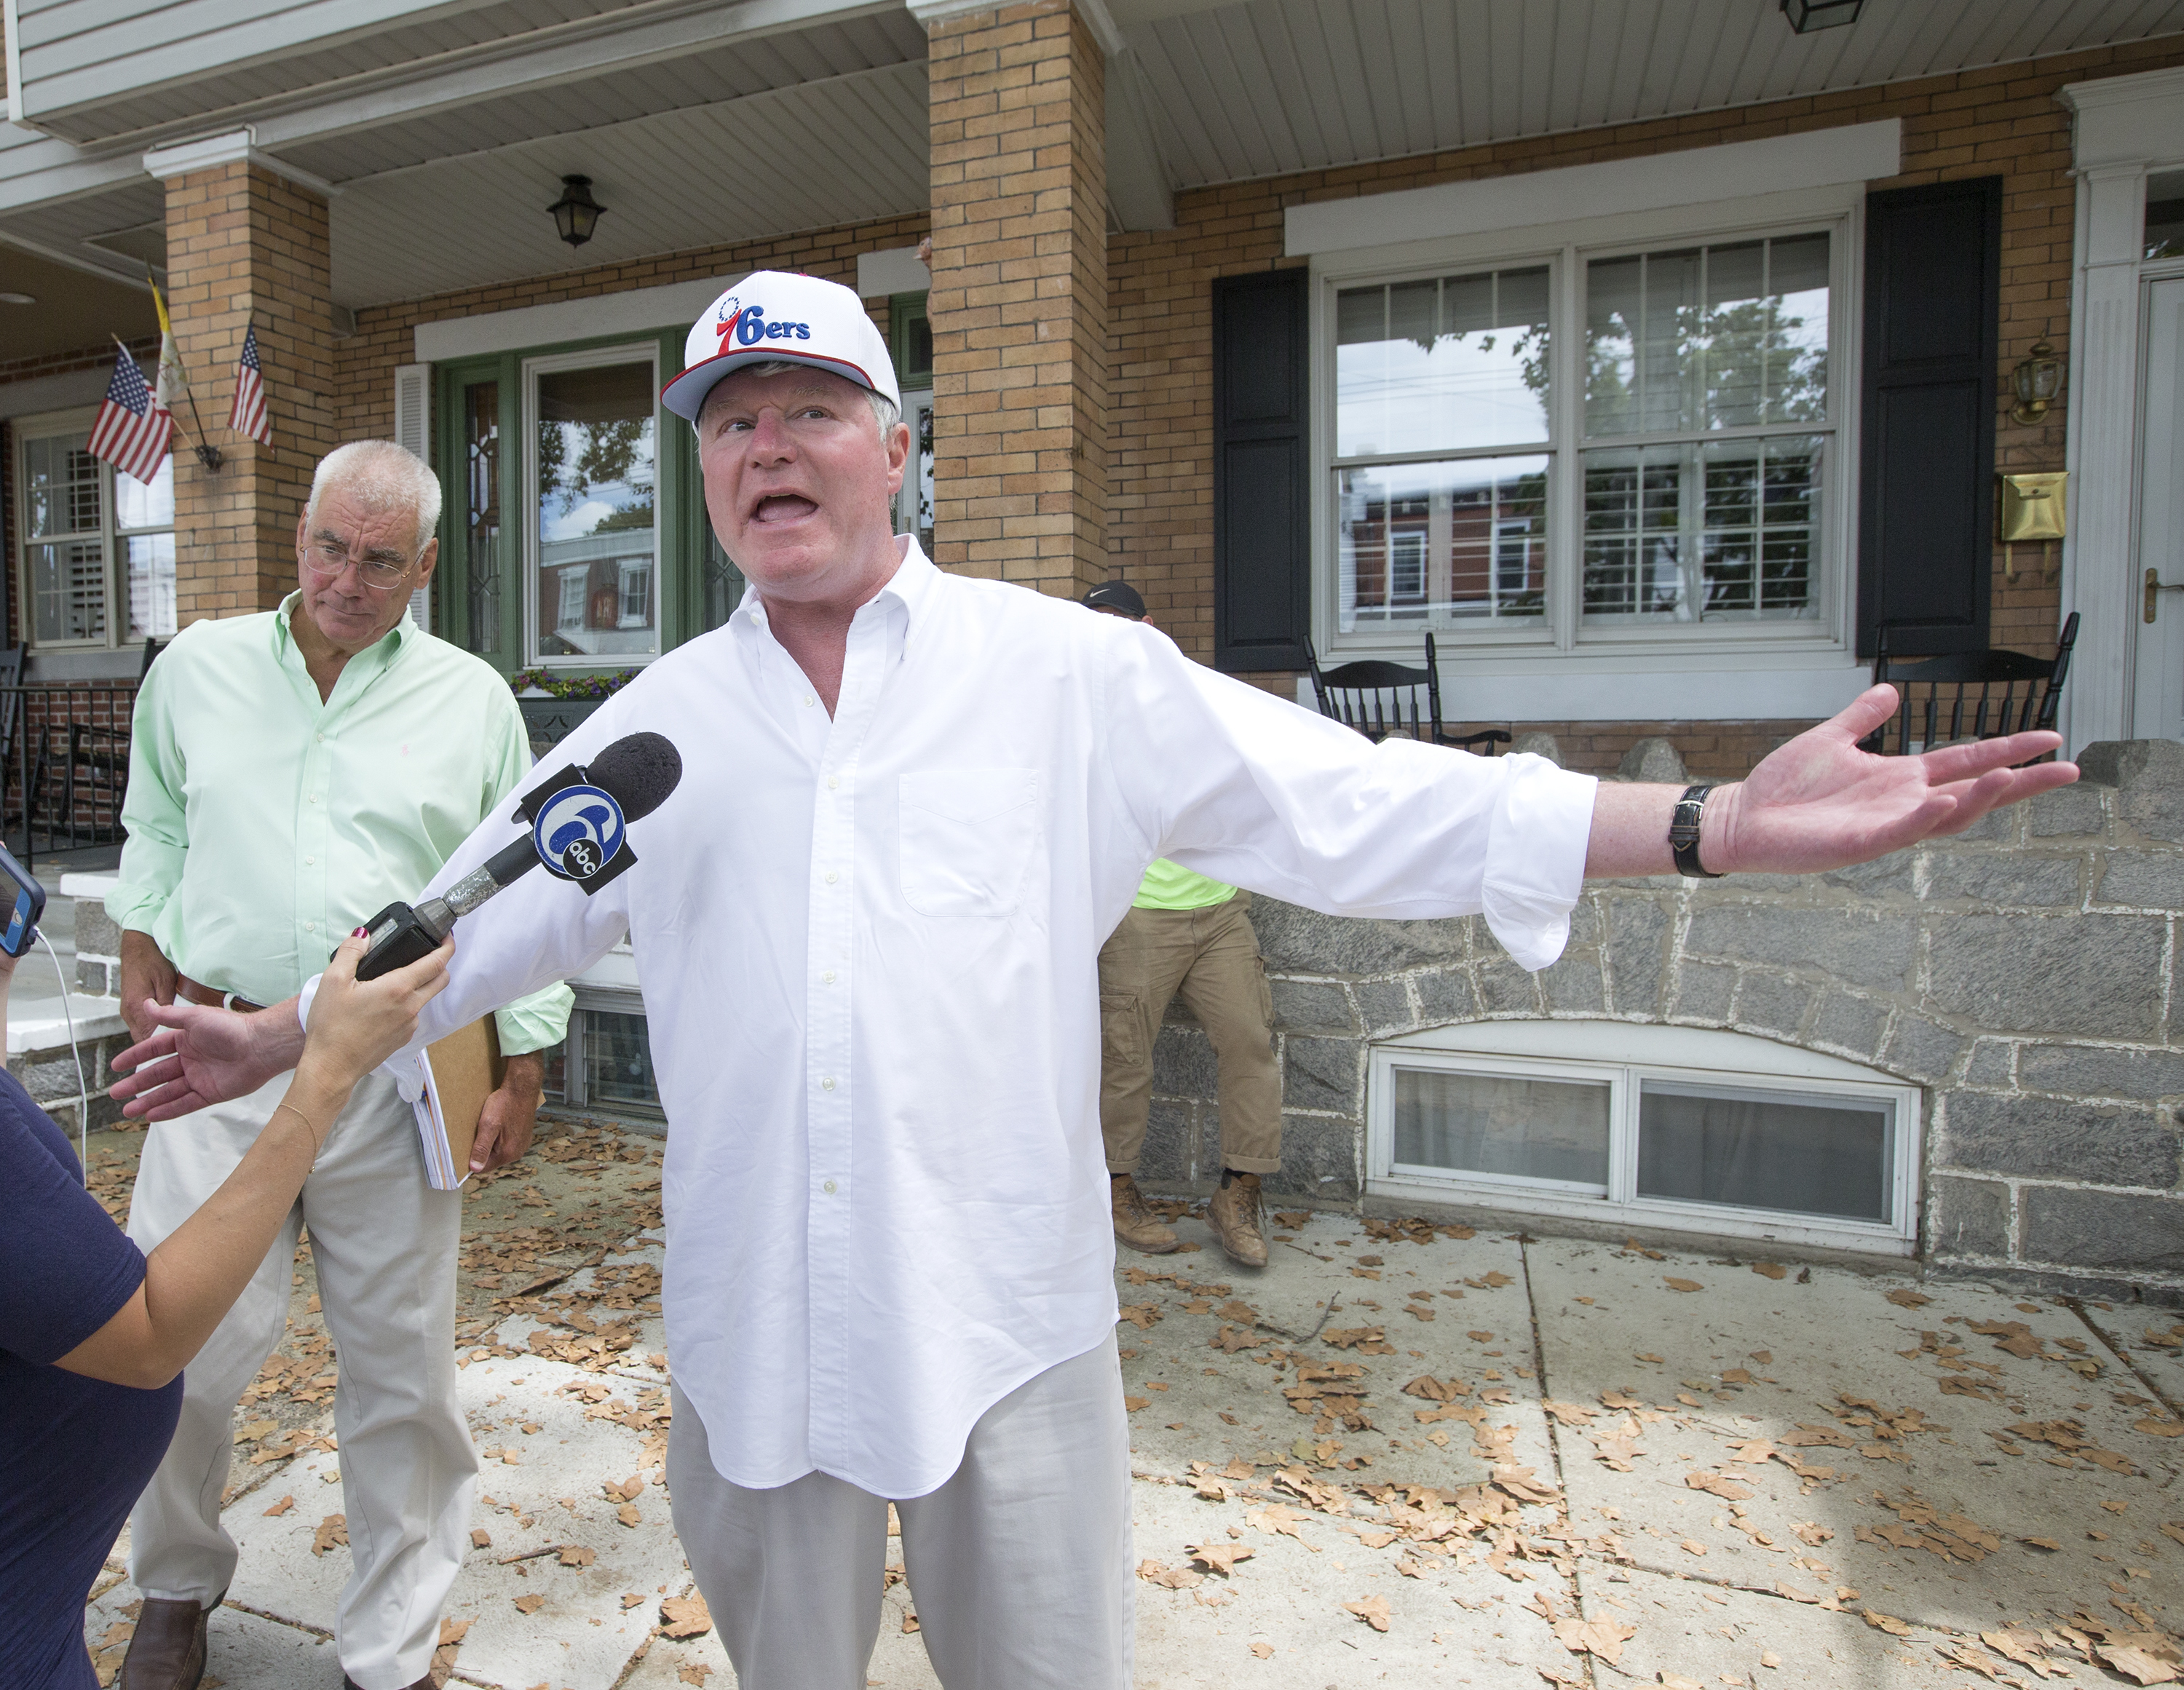 John Dougherty, right, makes some brief comments to the media on Moyamensing Ave. on Aug. 5, 2016. Law enforcement agencies were searching his home and his sisiter´s home as part of an investigation of the IBEW and it leader, John Dougherty.